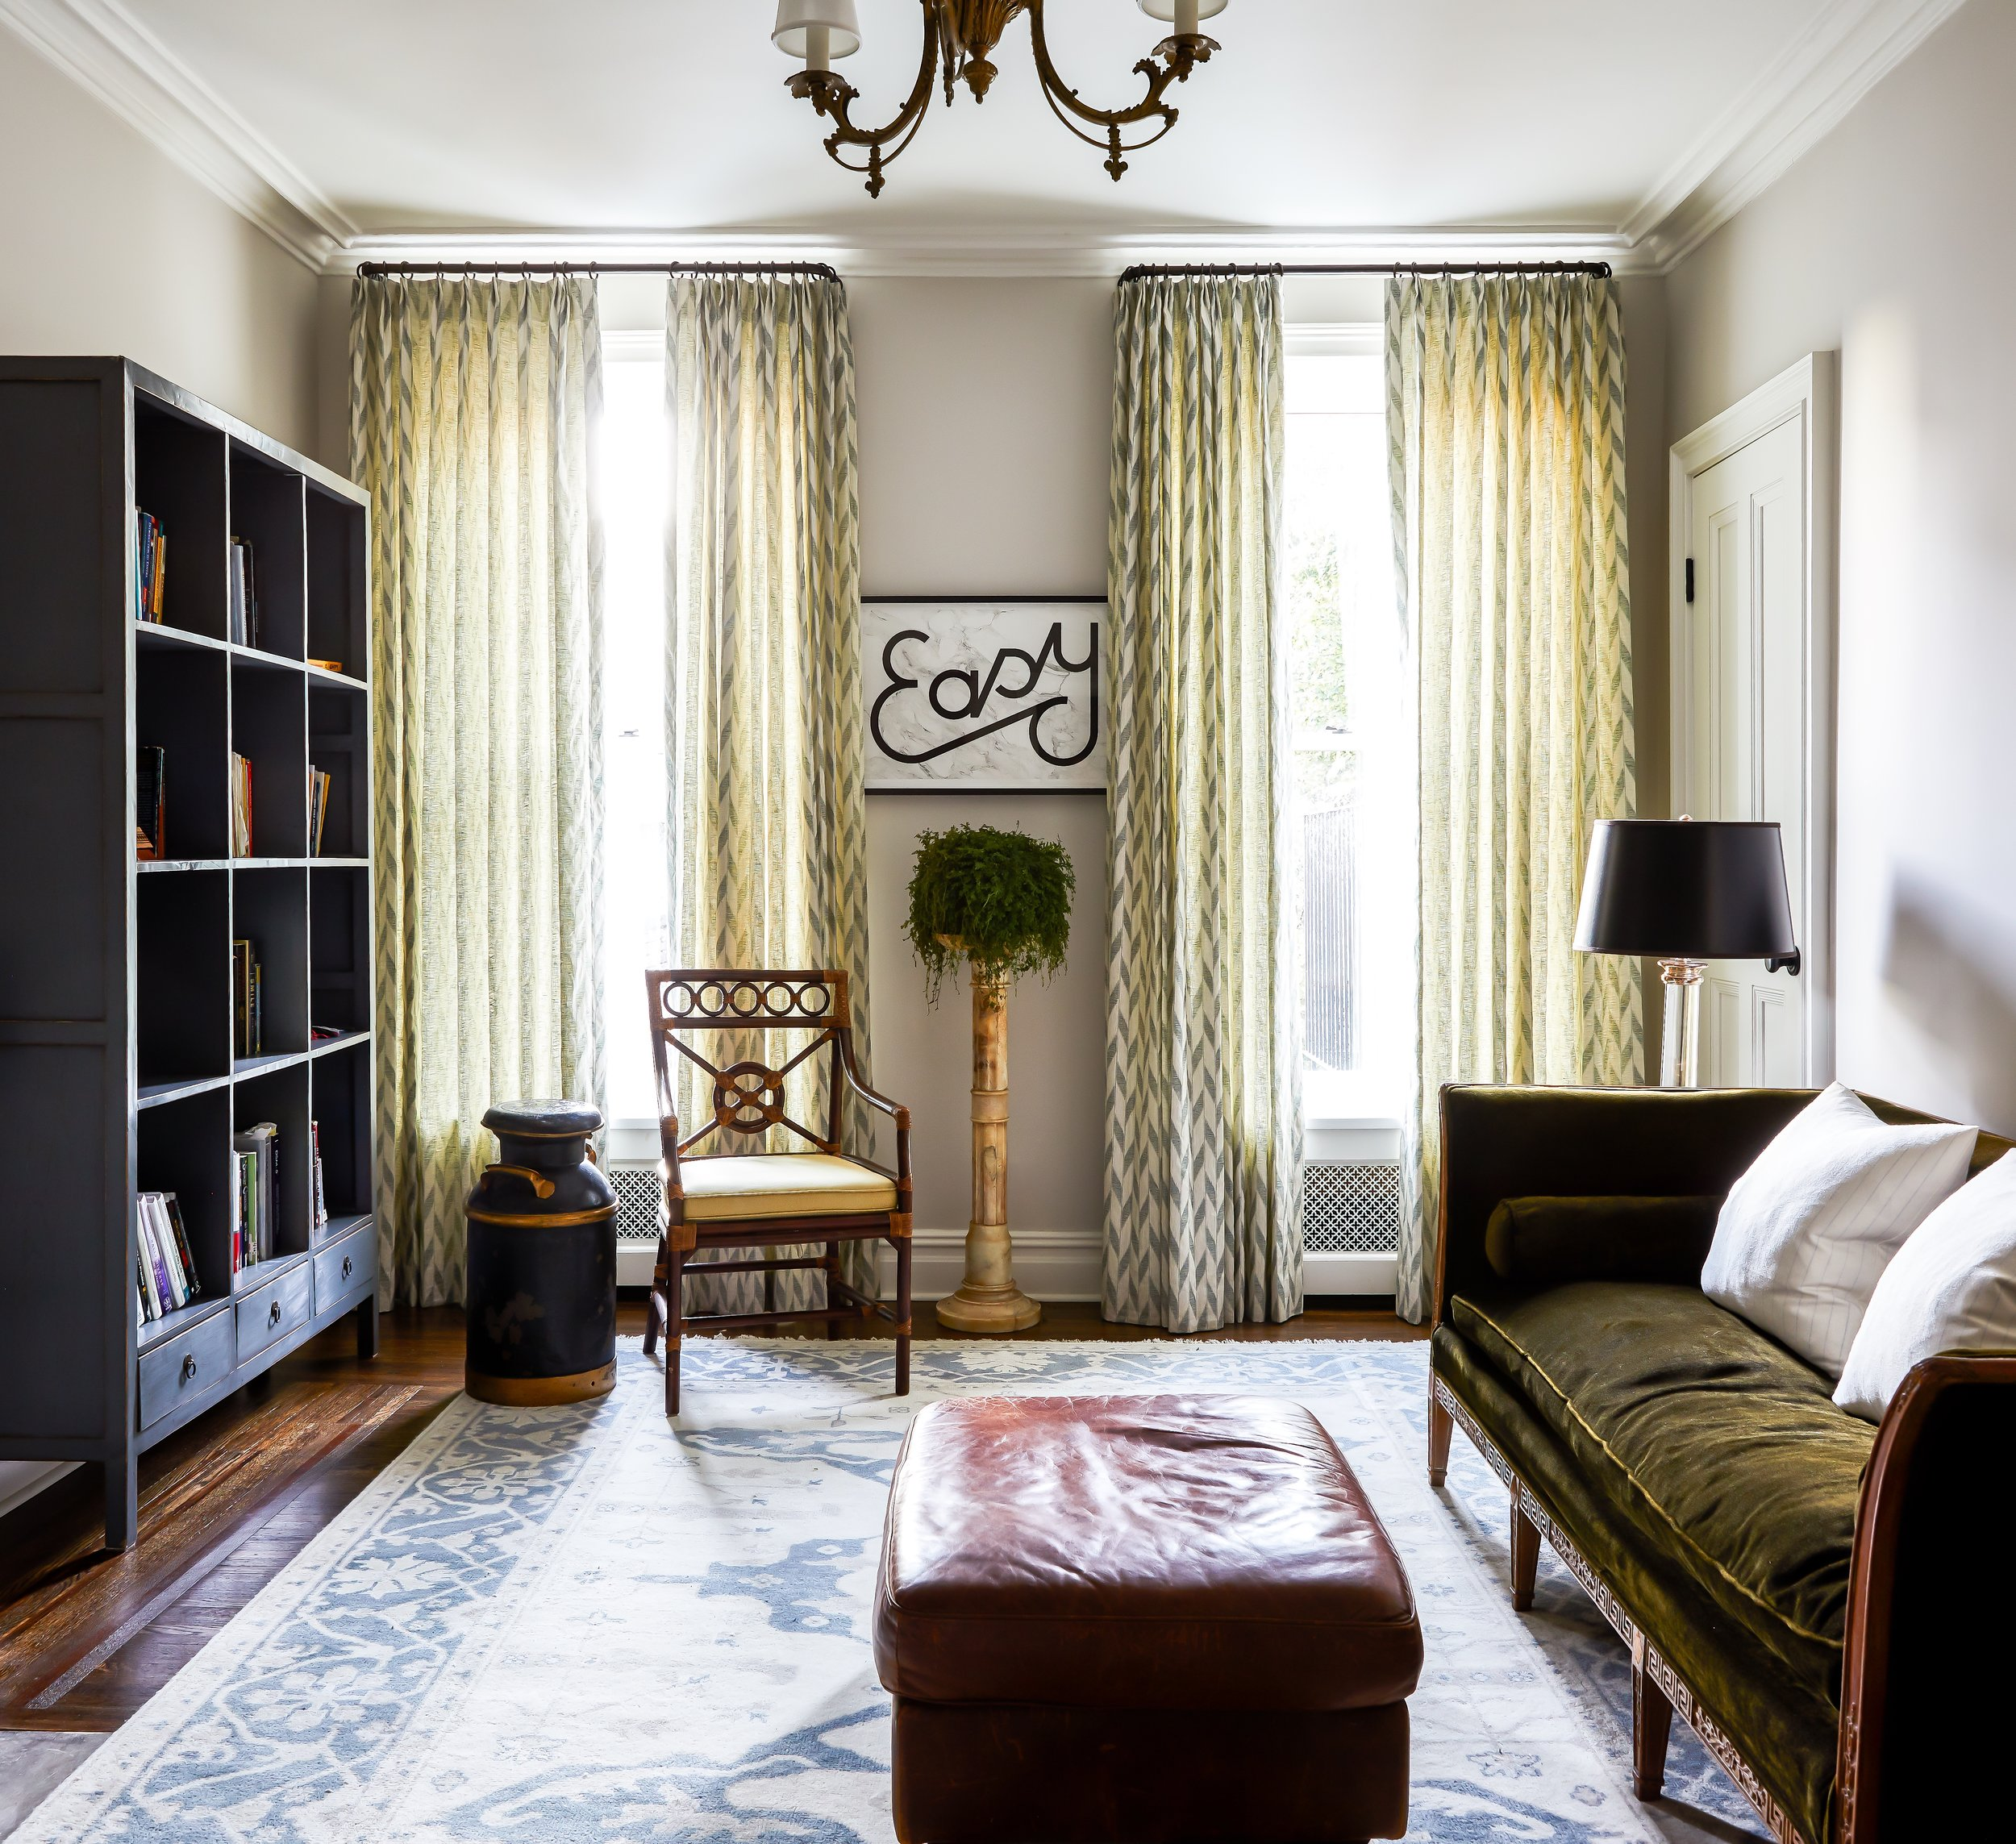 The Sitting Room in the Master Suite that encompasses the entire 3rd floor in a Brooklyn townhouse featured in House Beautiful. An antique wood trimmed sofa in a cotton velvet with a blue hand painted bookcase from England. Custom window treatments by Genesis Upholstery in a Rose Tarlow glazed linen and a vintage bamboo chair from The Antique & Artisan Gallery in Stamford, Connecticut.